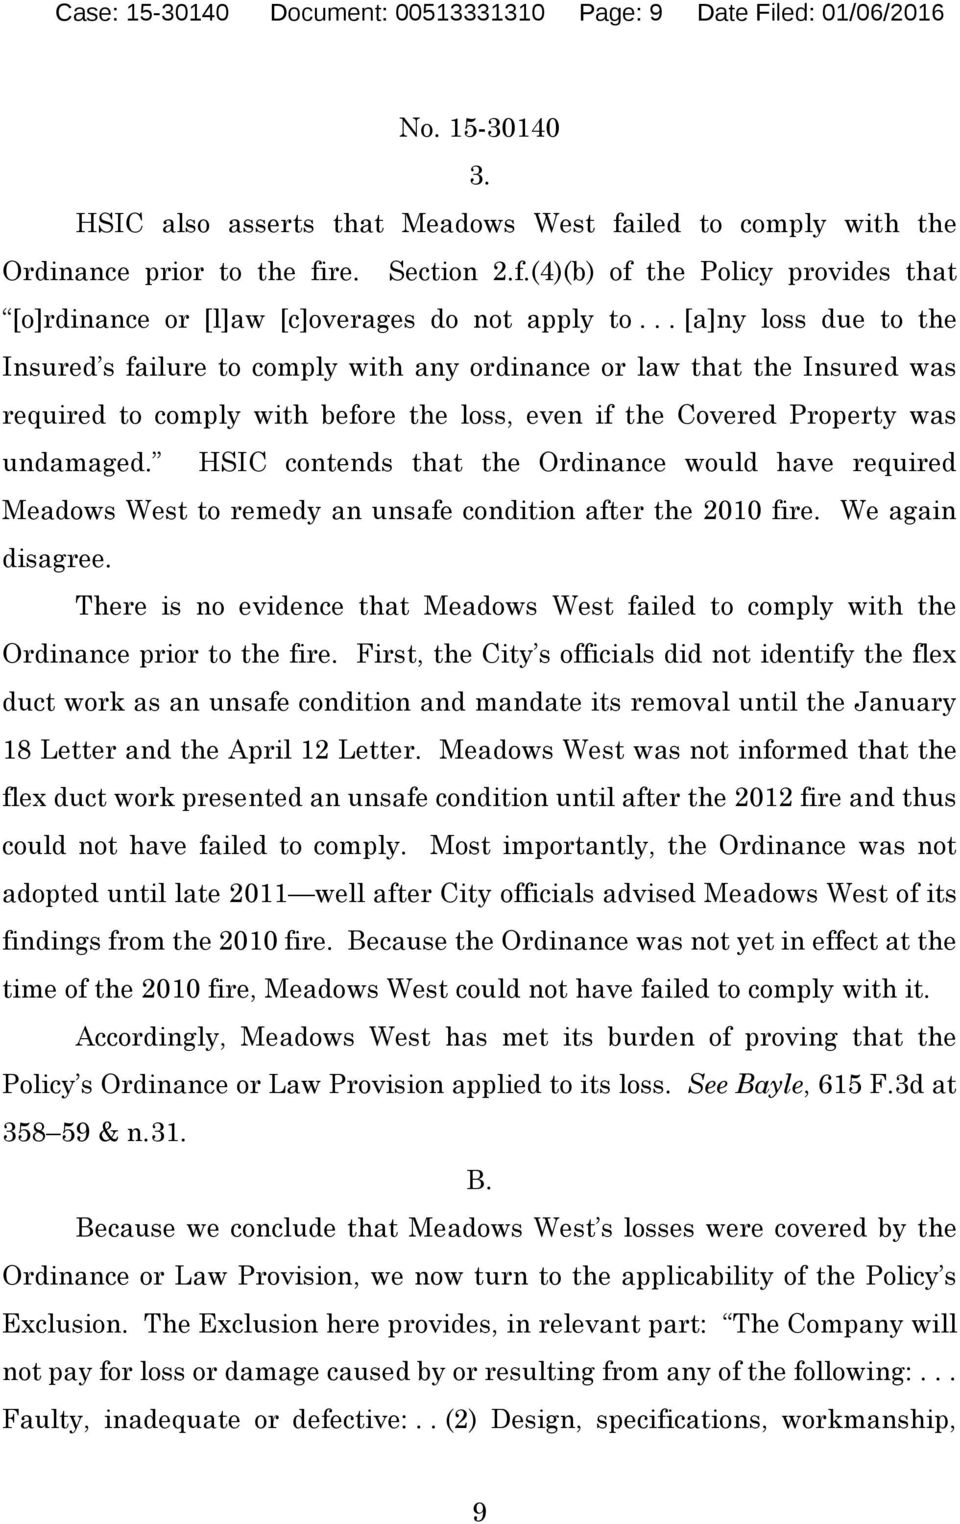 HSIC contends that the Ordinance would have required Meadows West to remedy an unsafe condition after the 2010 fire. We again disagree.